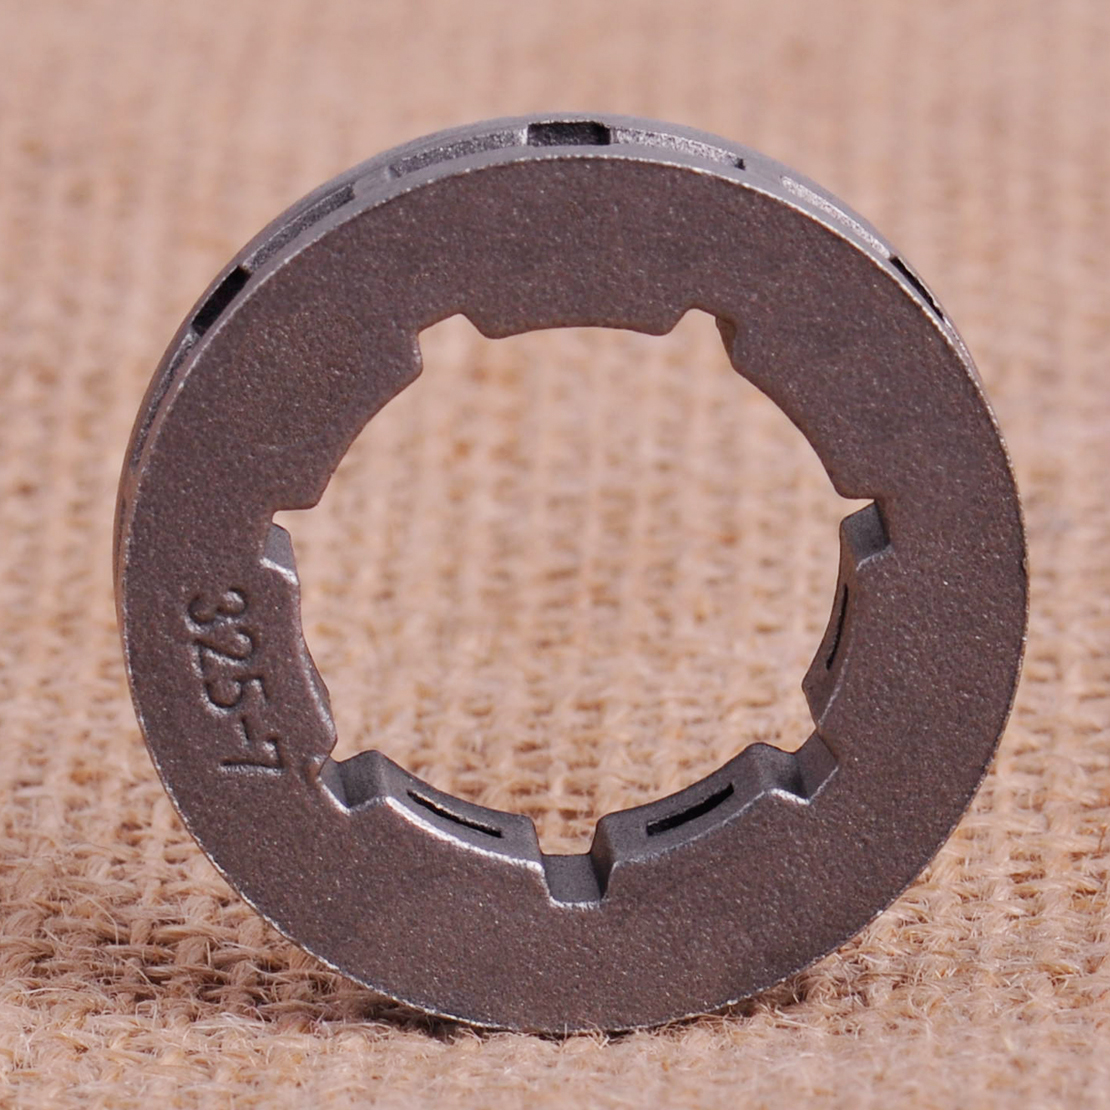 LETAOSK New Chain Sprocket Rim 325-7 7 Tooth Replacement Fit For Stihl Husqvarna Chainsaw